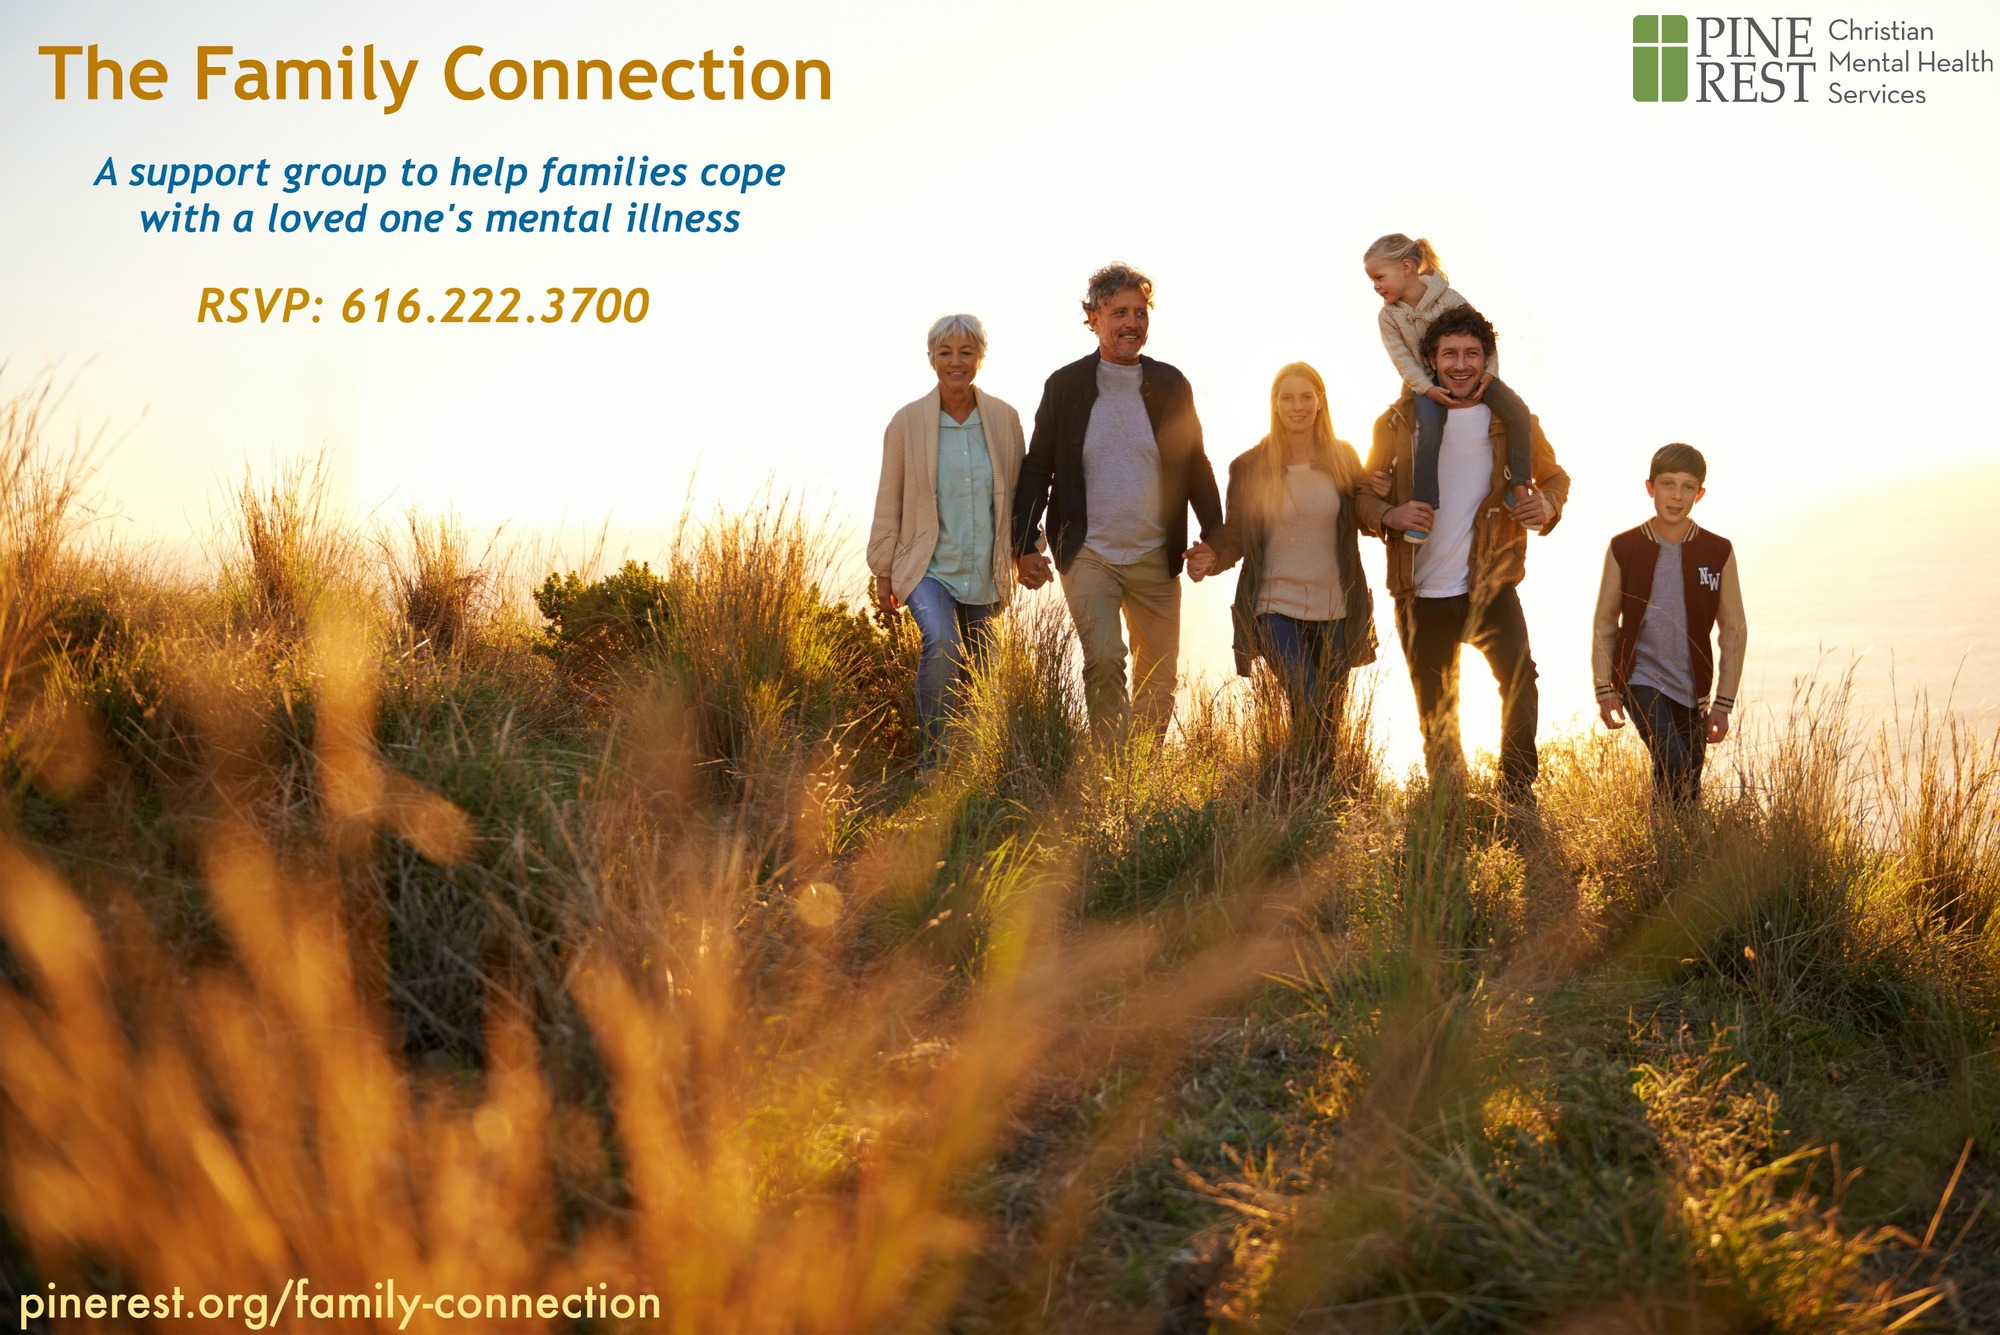 Family Connection AD Image